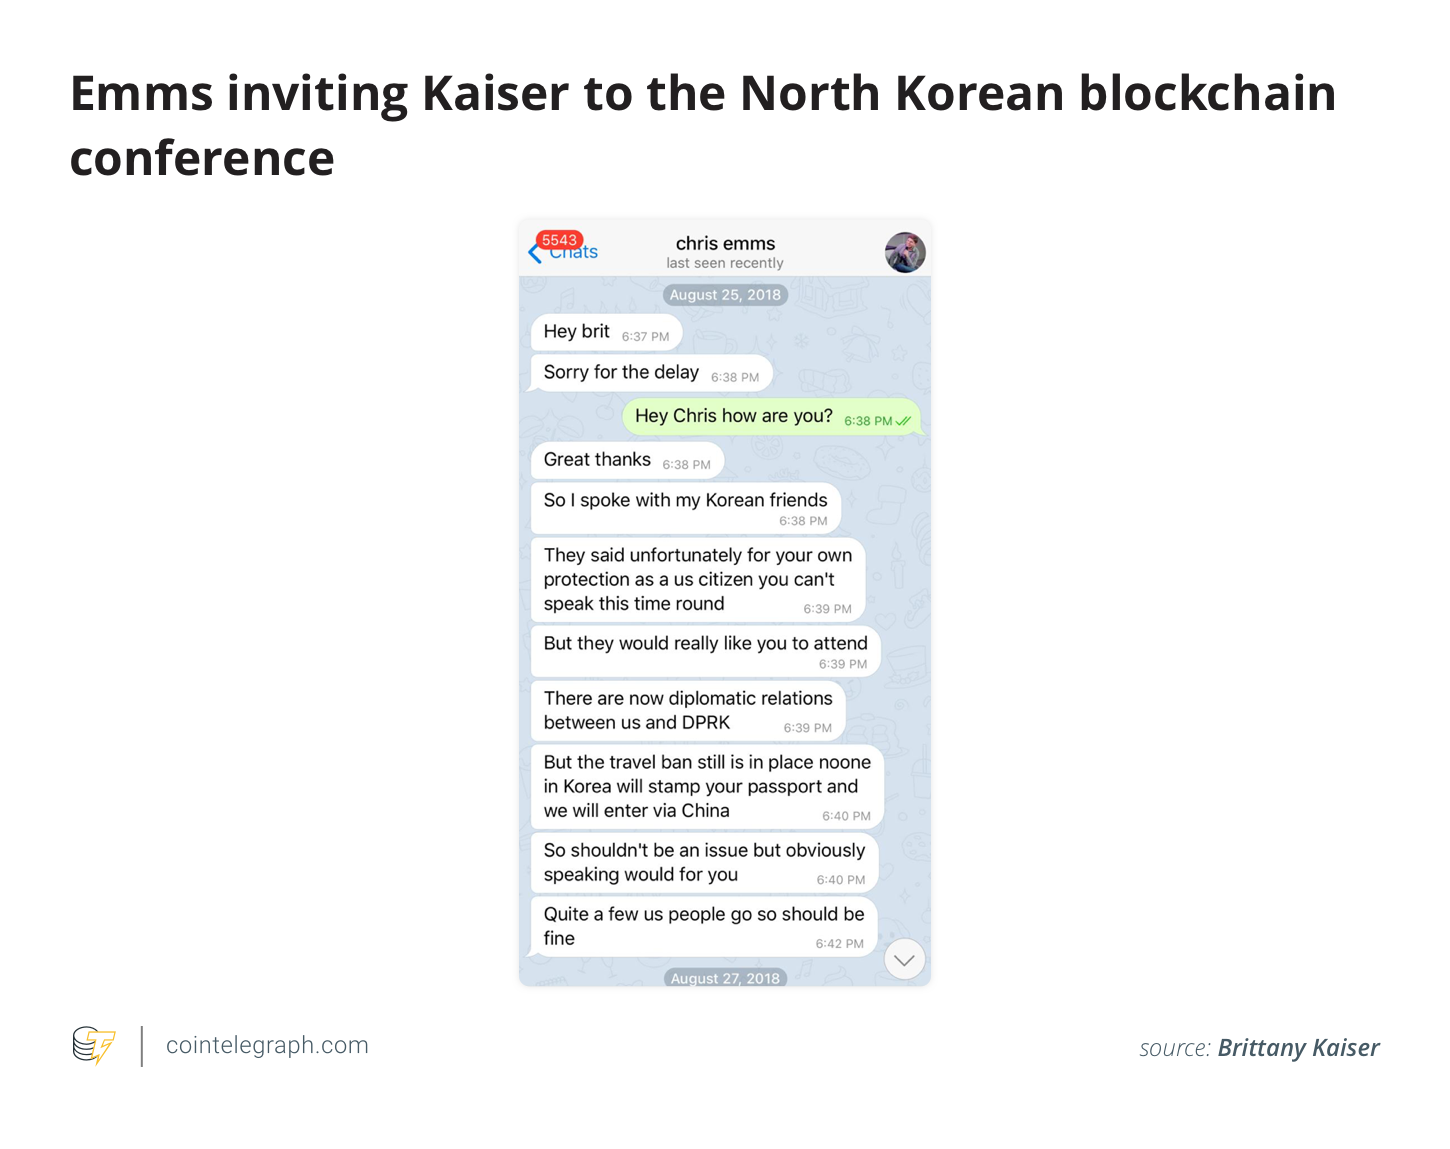 Emms inviting Kaiser to the North Korean blockchain conference